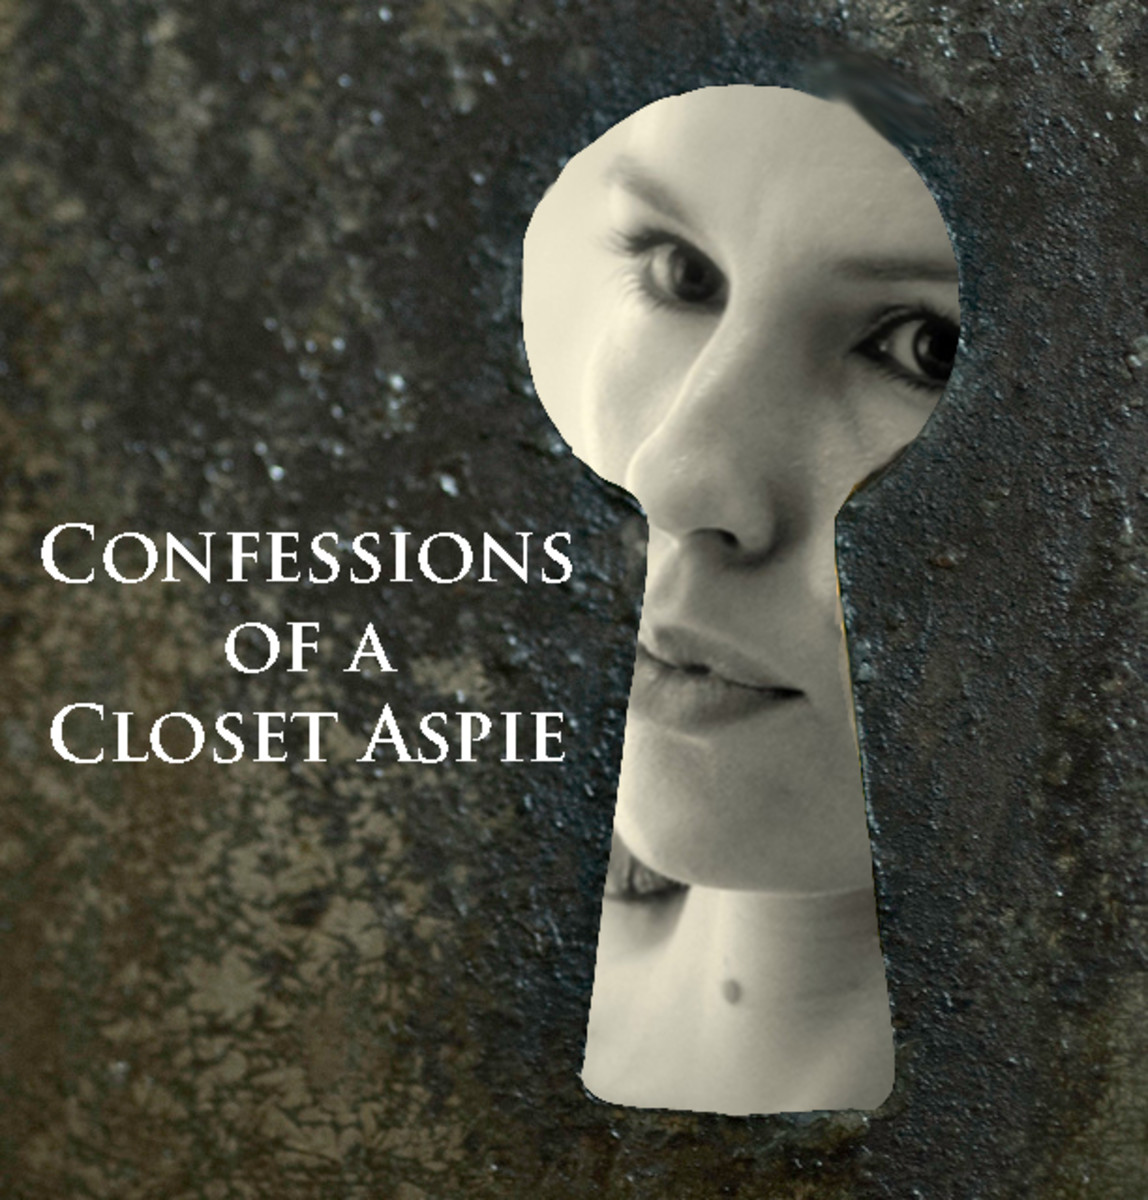 Confessions of a Closet Aspie: Women & Girls on the Autism Spectrum